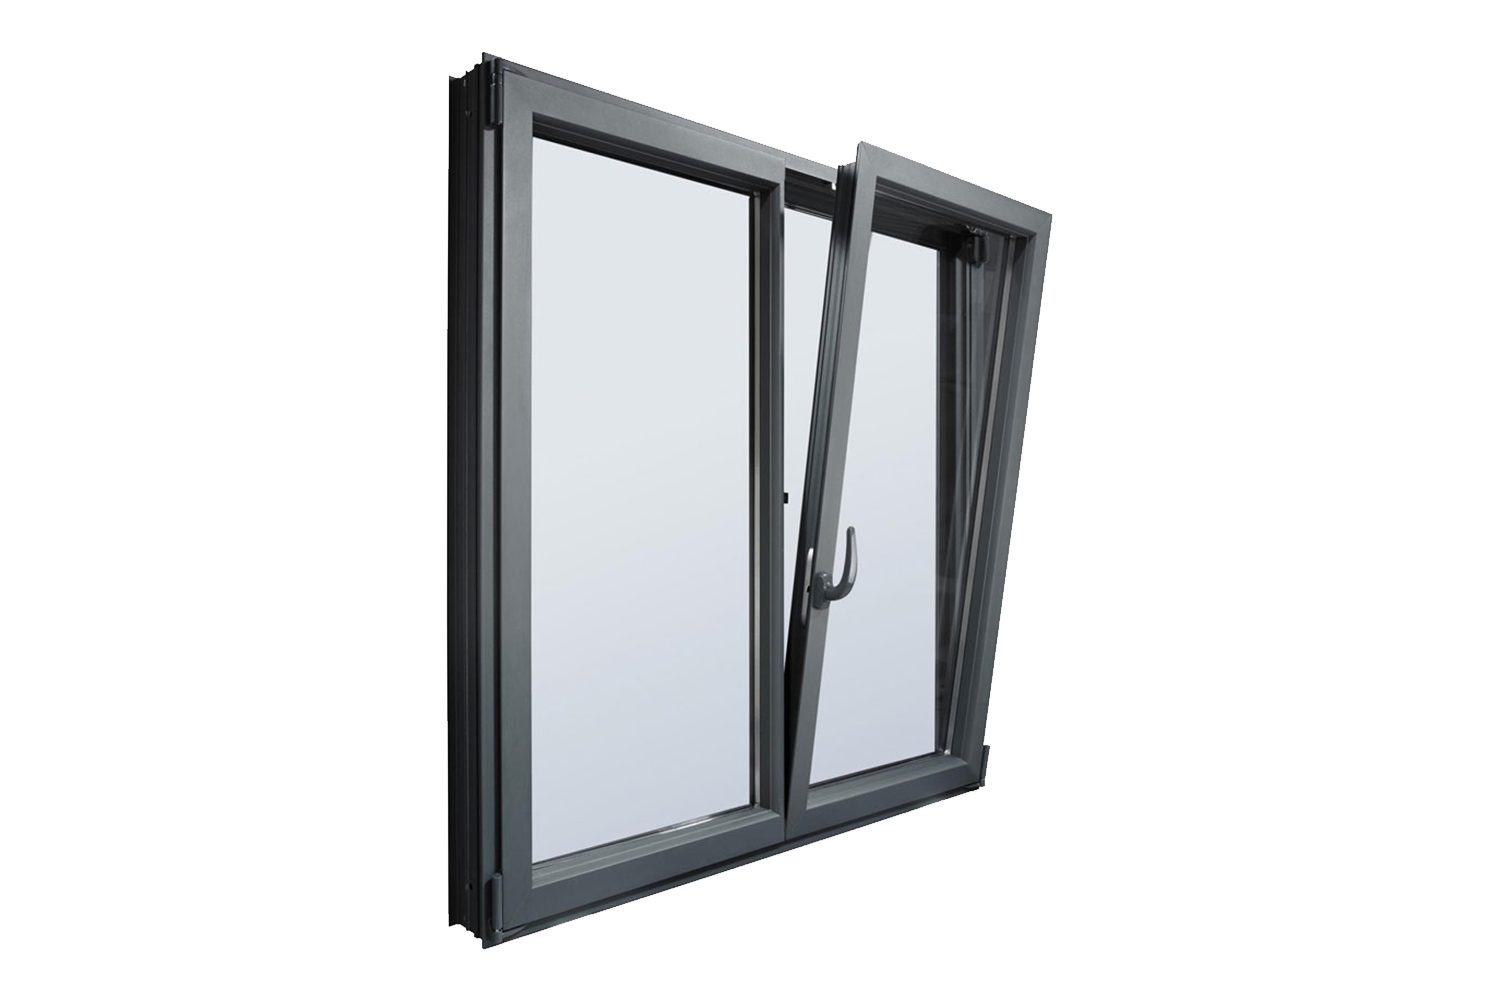 Double glazed aluminium windows trade windows suffolk for Largeur fenetre